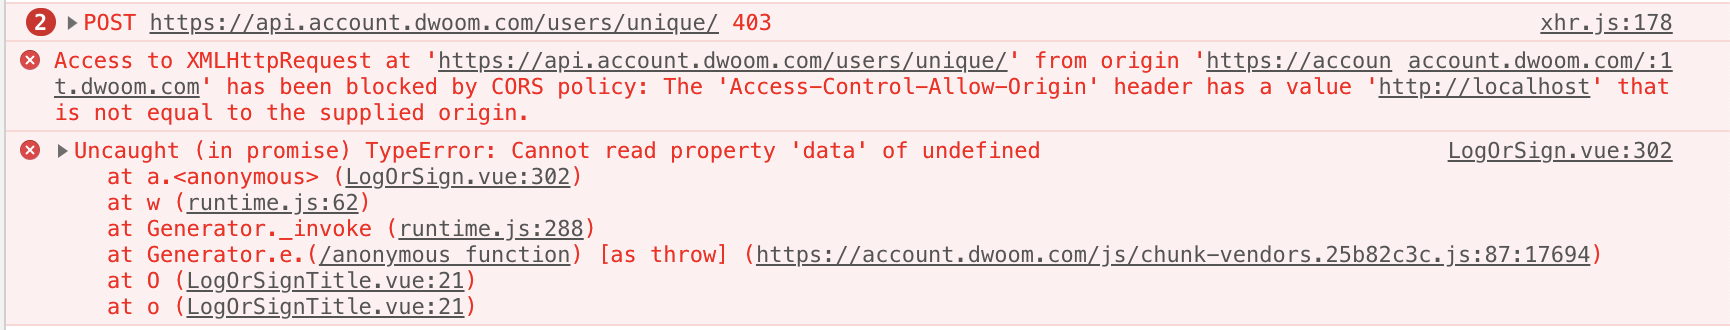 The 'Access-Control-Allow-Origin' header is not equal to the